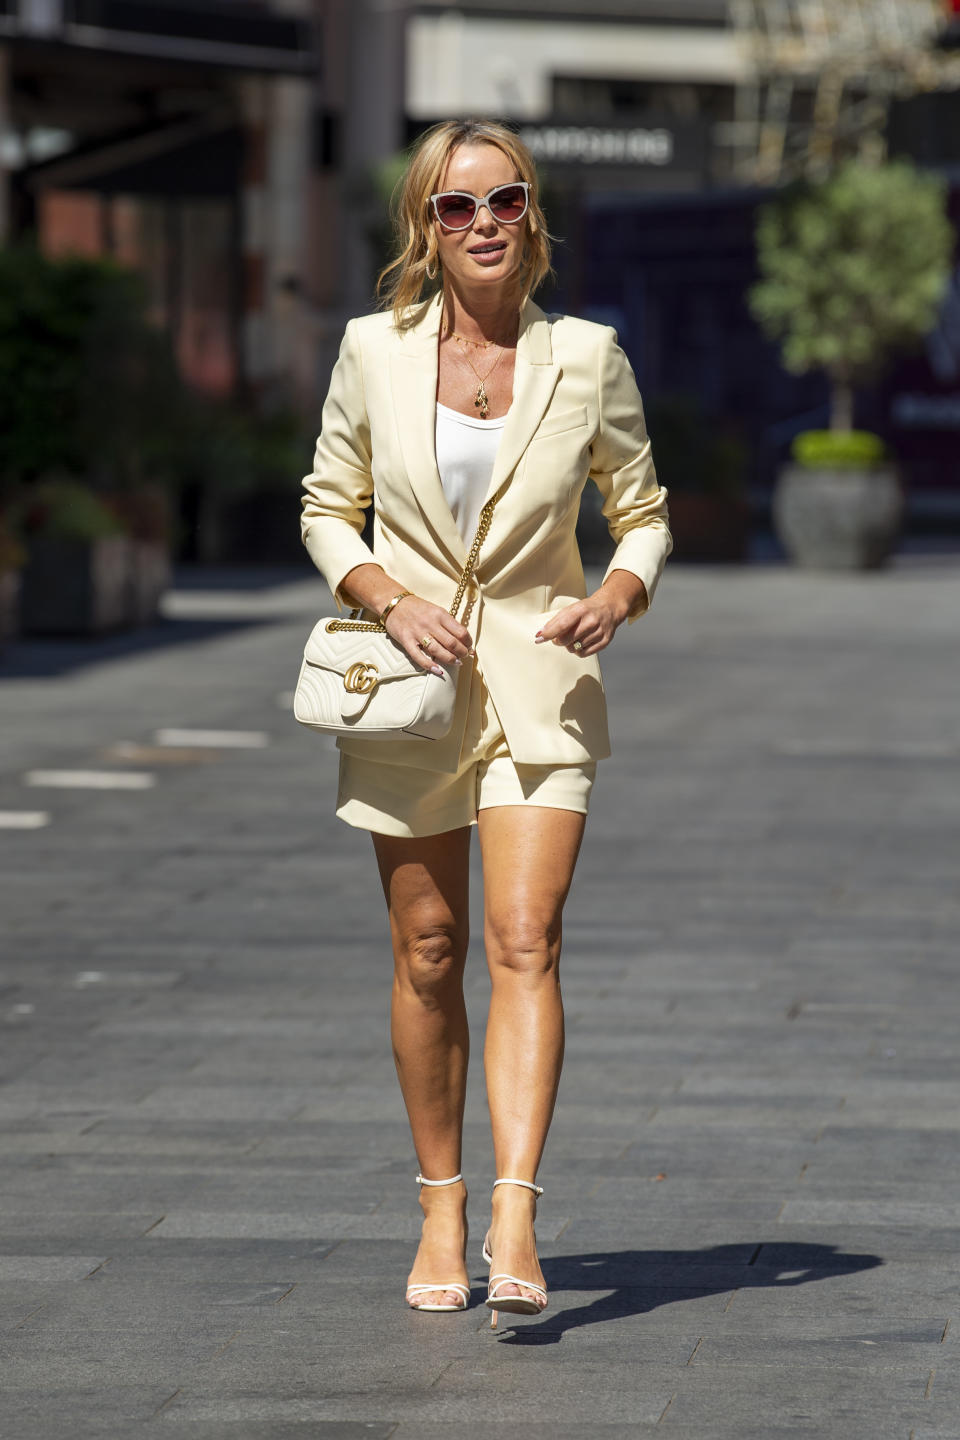 Amanda Holden pictured outside the Global Radio studios on June 14, 2021 in London, England, wearing a yellow short suit from Reiss.  (Getty Images)